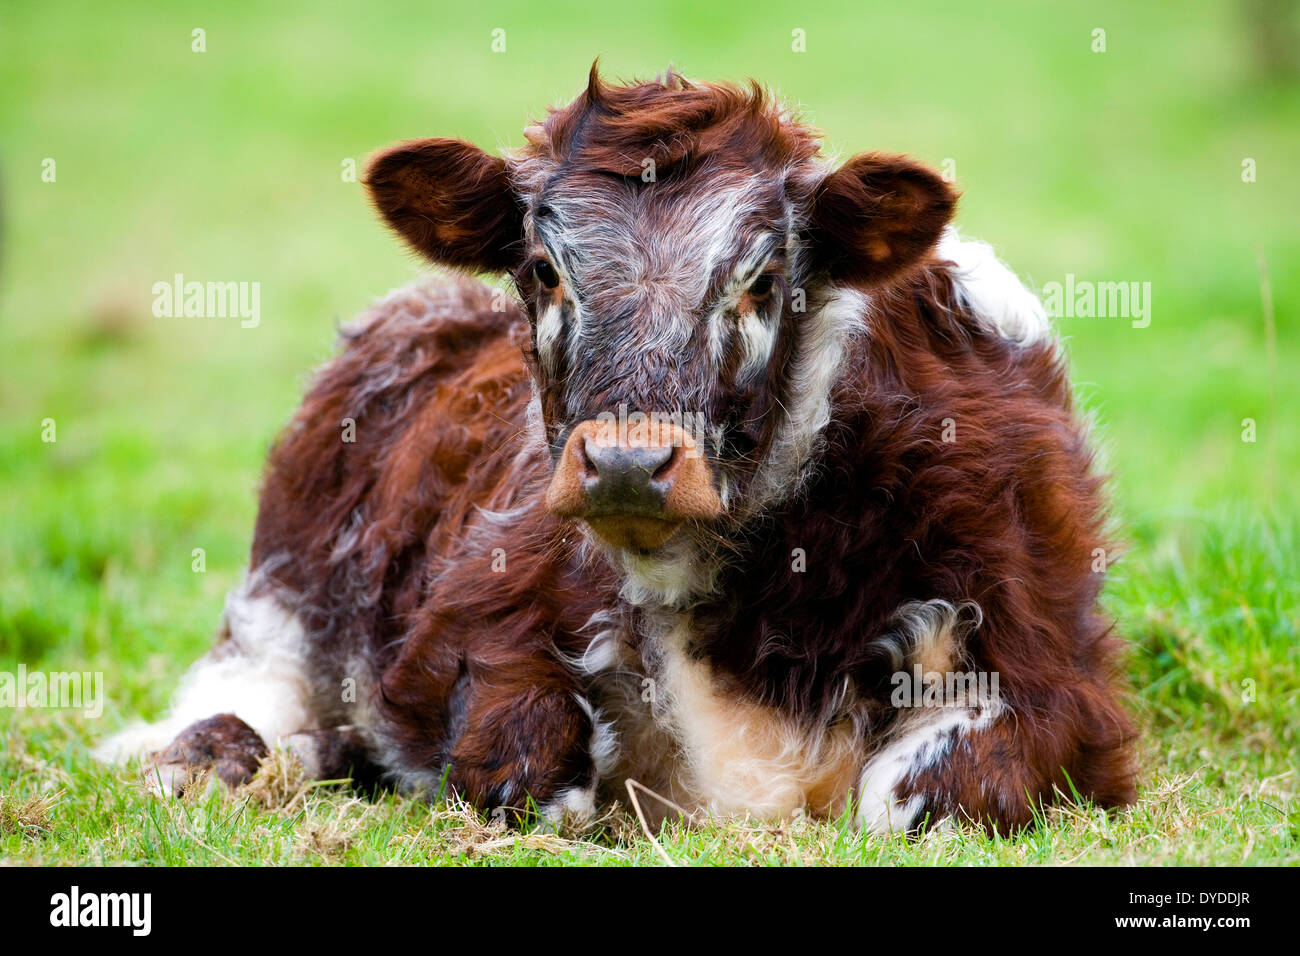 A Long Horned Cow sitting in a field. - Stock Image